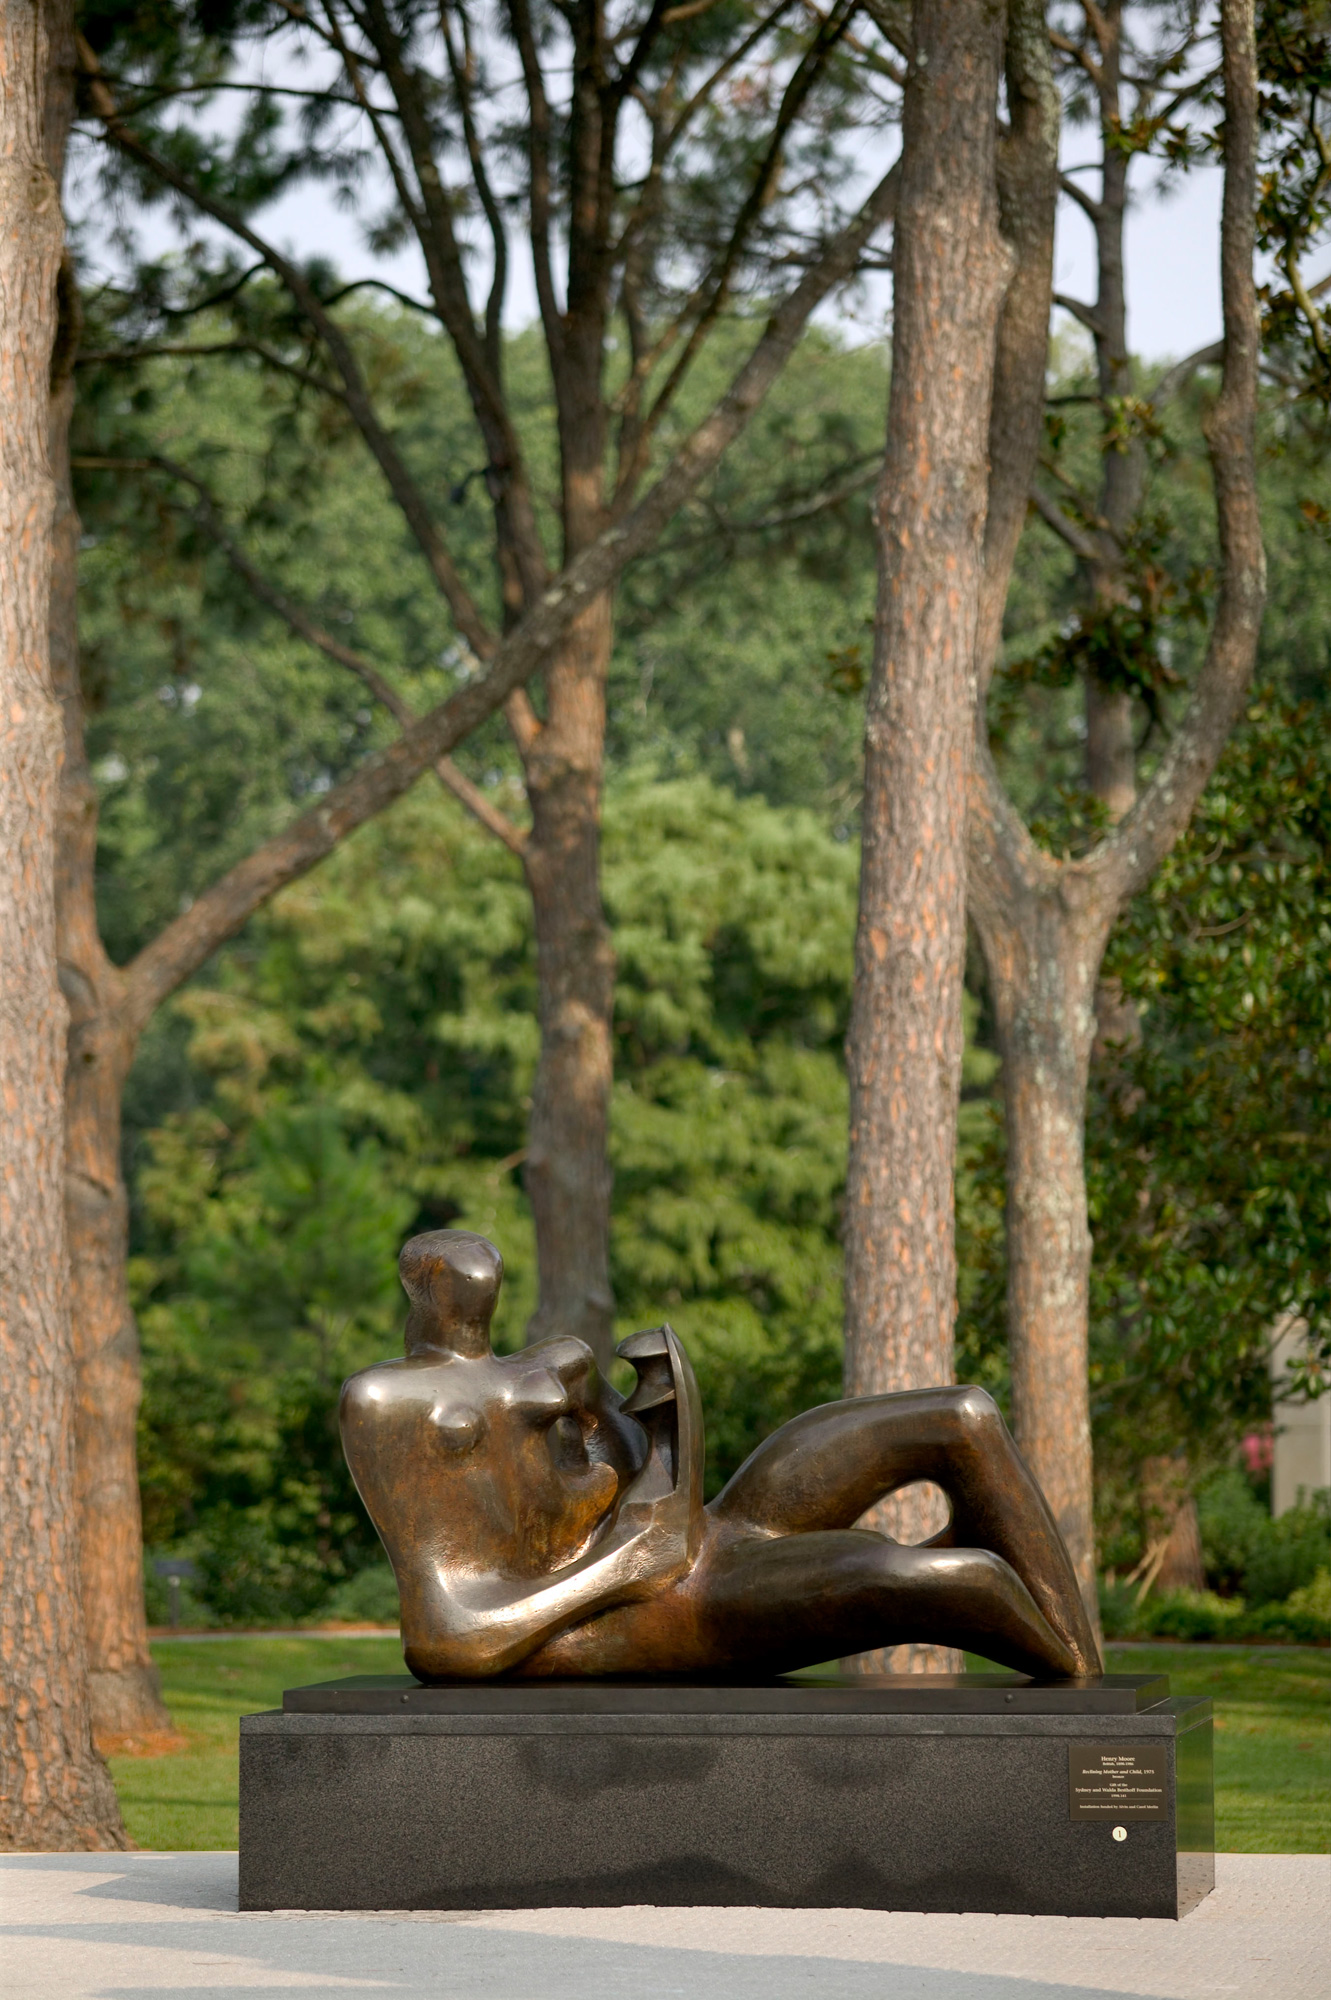 Join NOMA's docents for a free guided tour of the Sydney and Walda Besthoff Sculpture Garden on Saturdays and Mondays, weather dependent, at noon.